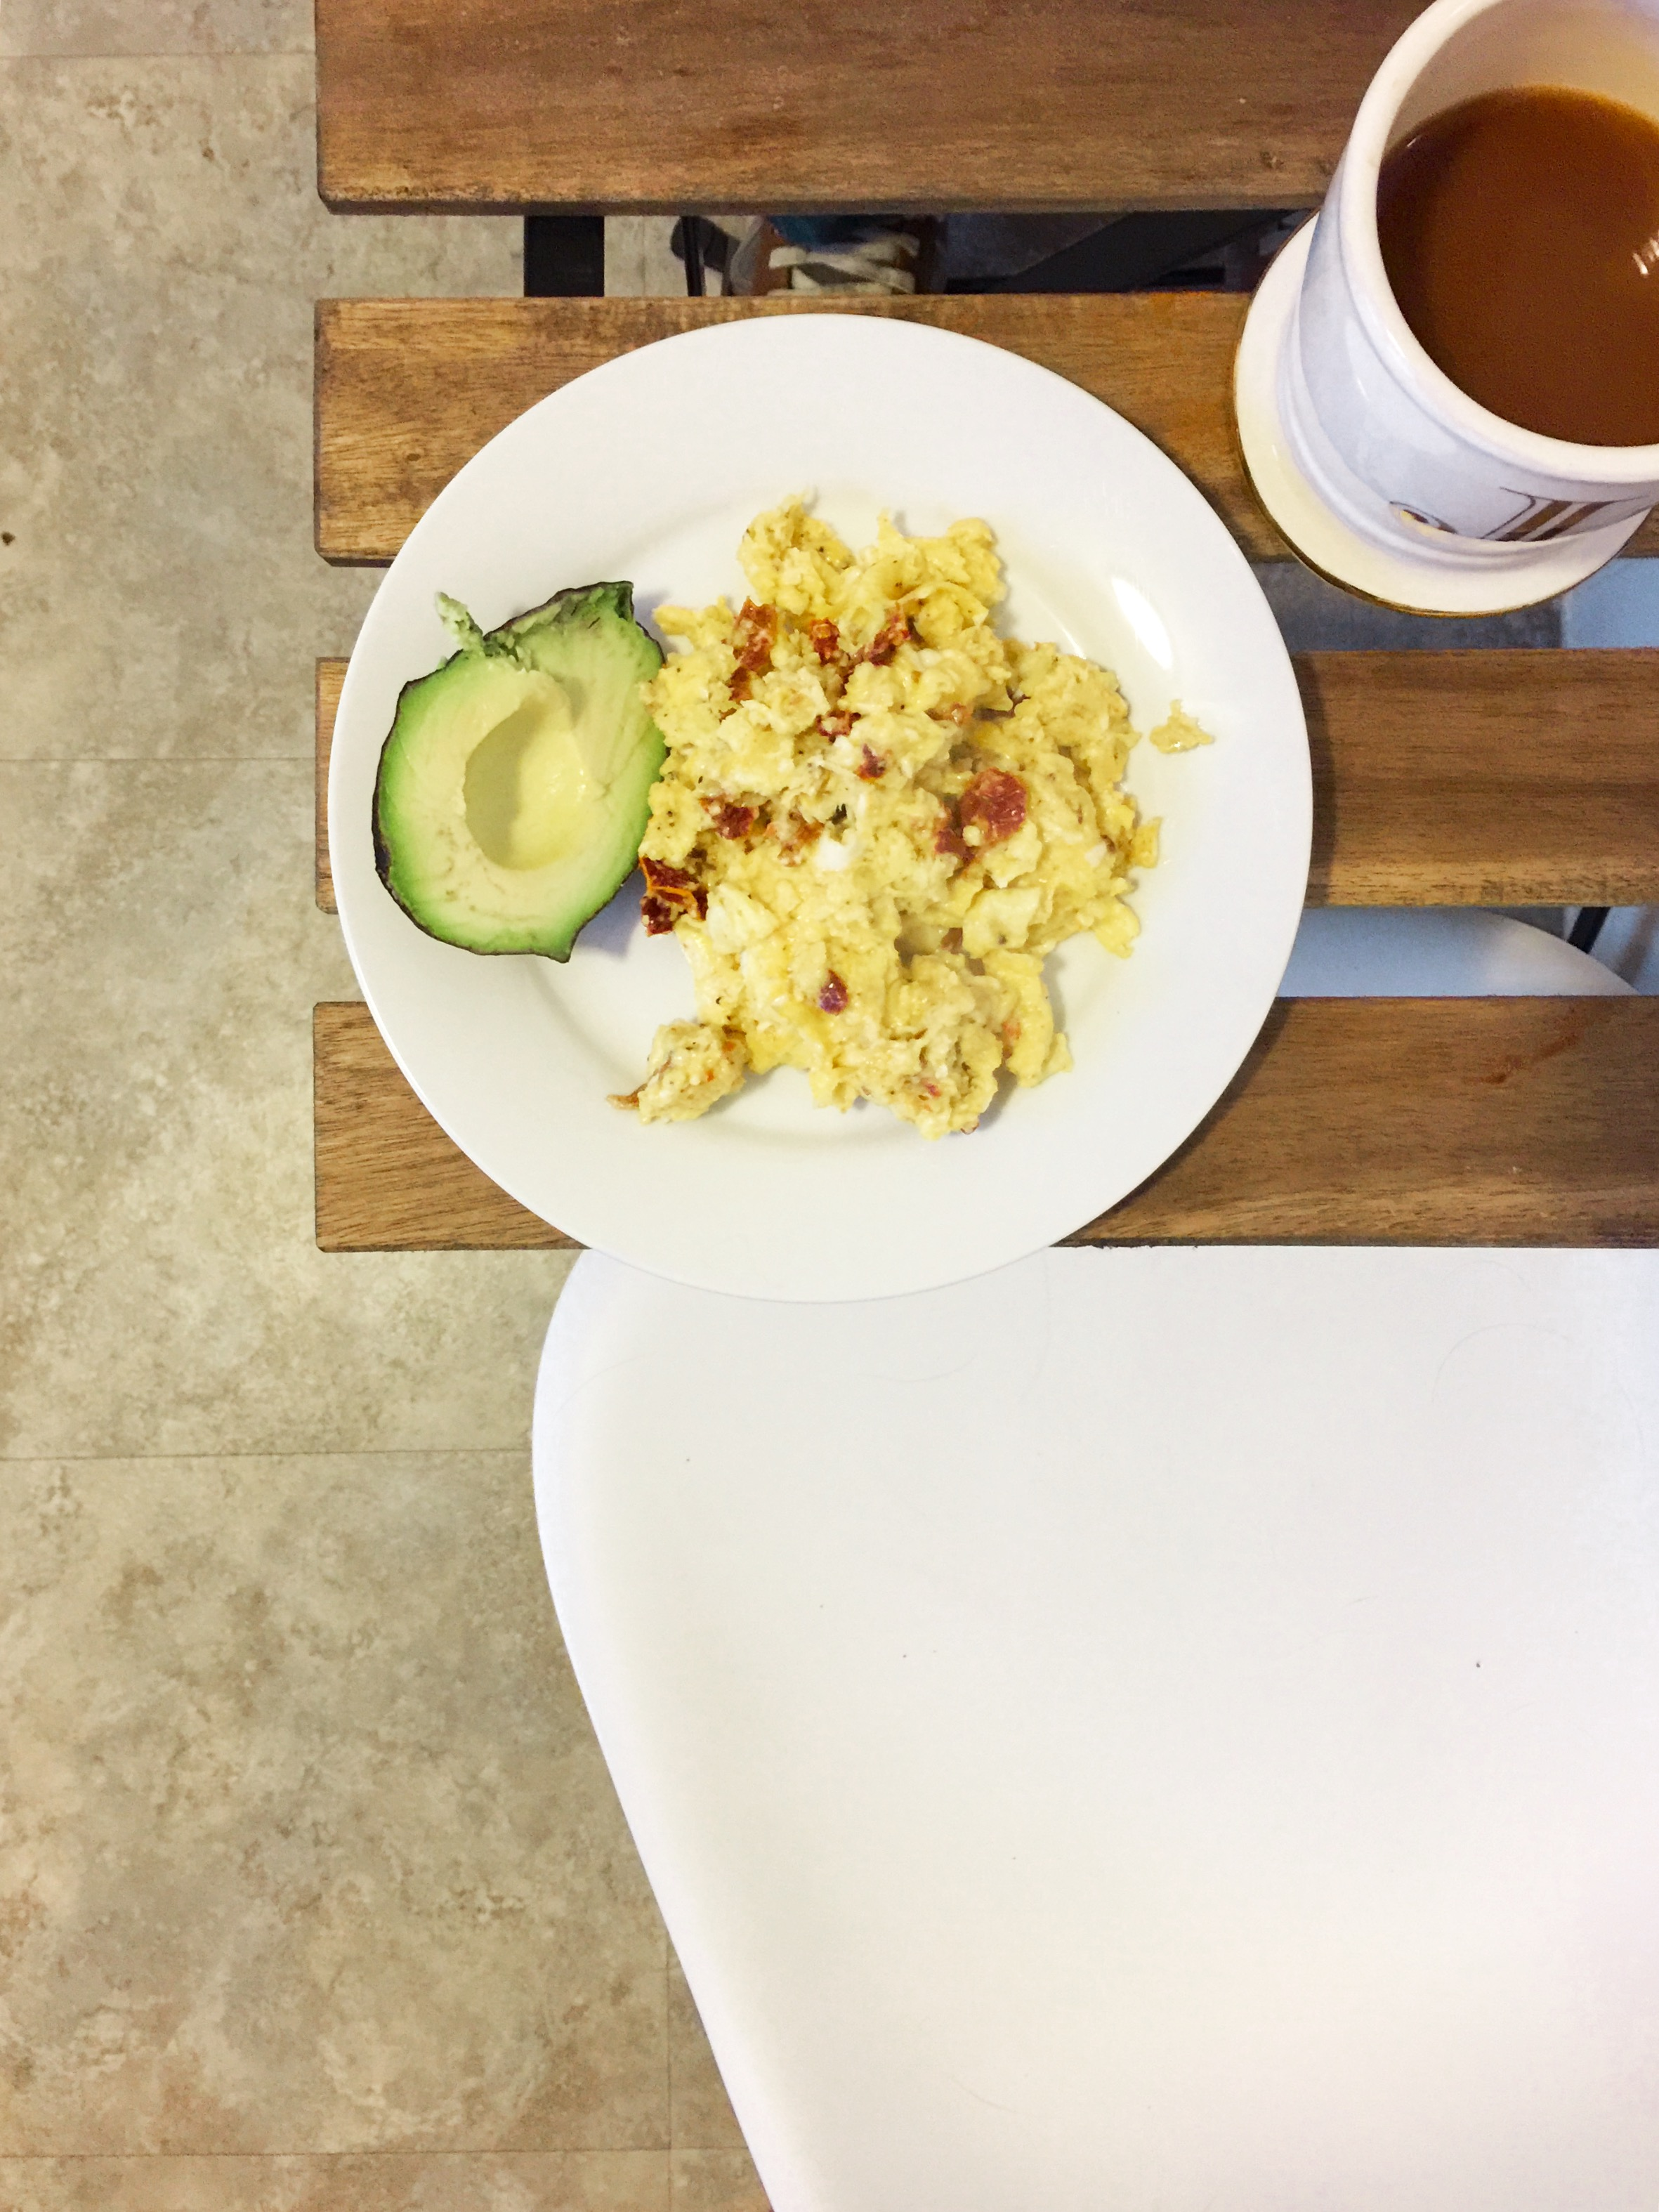 Sundried tomatoes and eggs with avocado